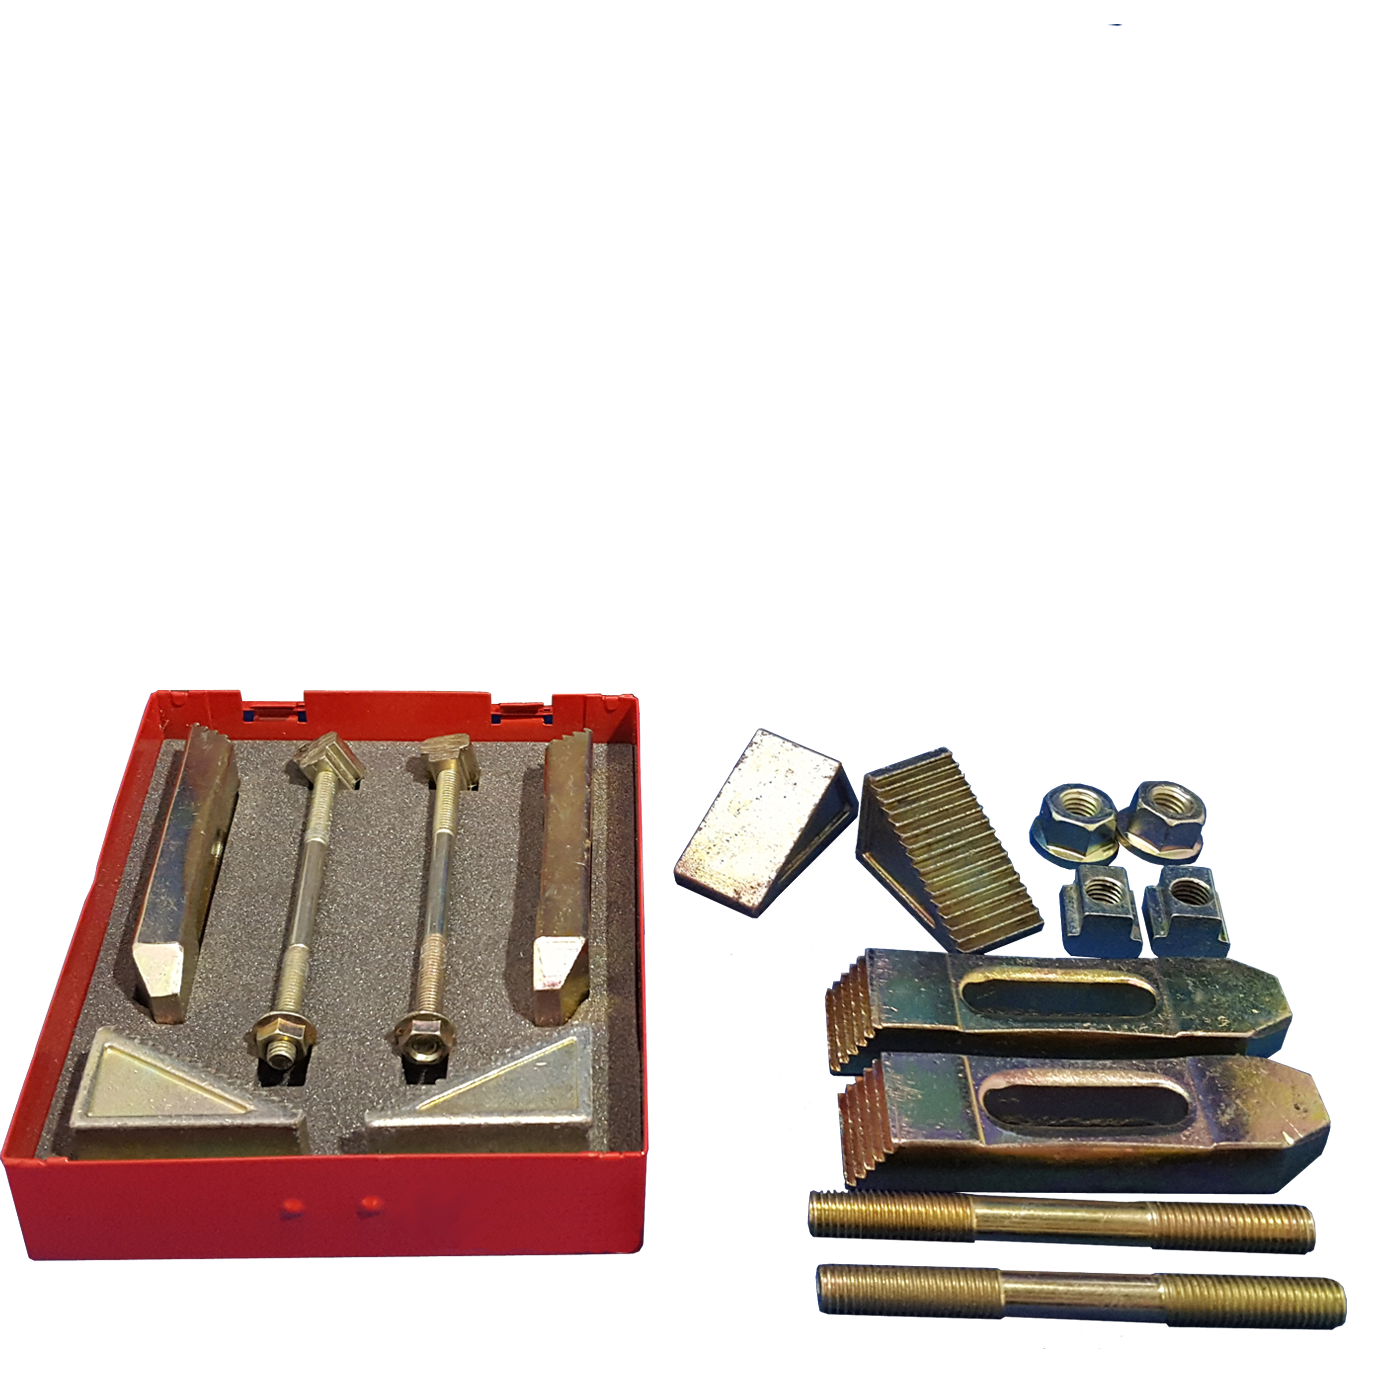 Small Clamp Kits